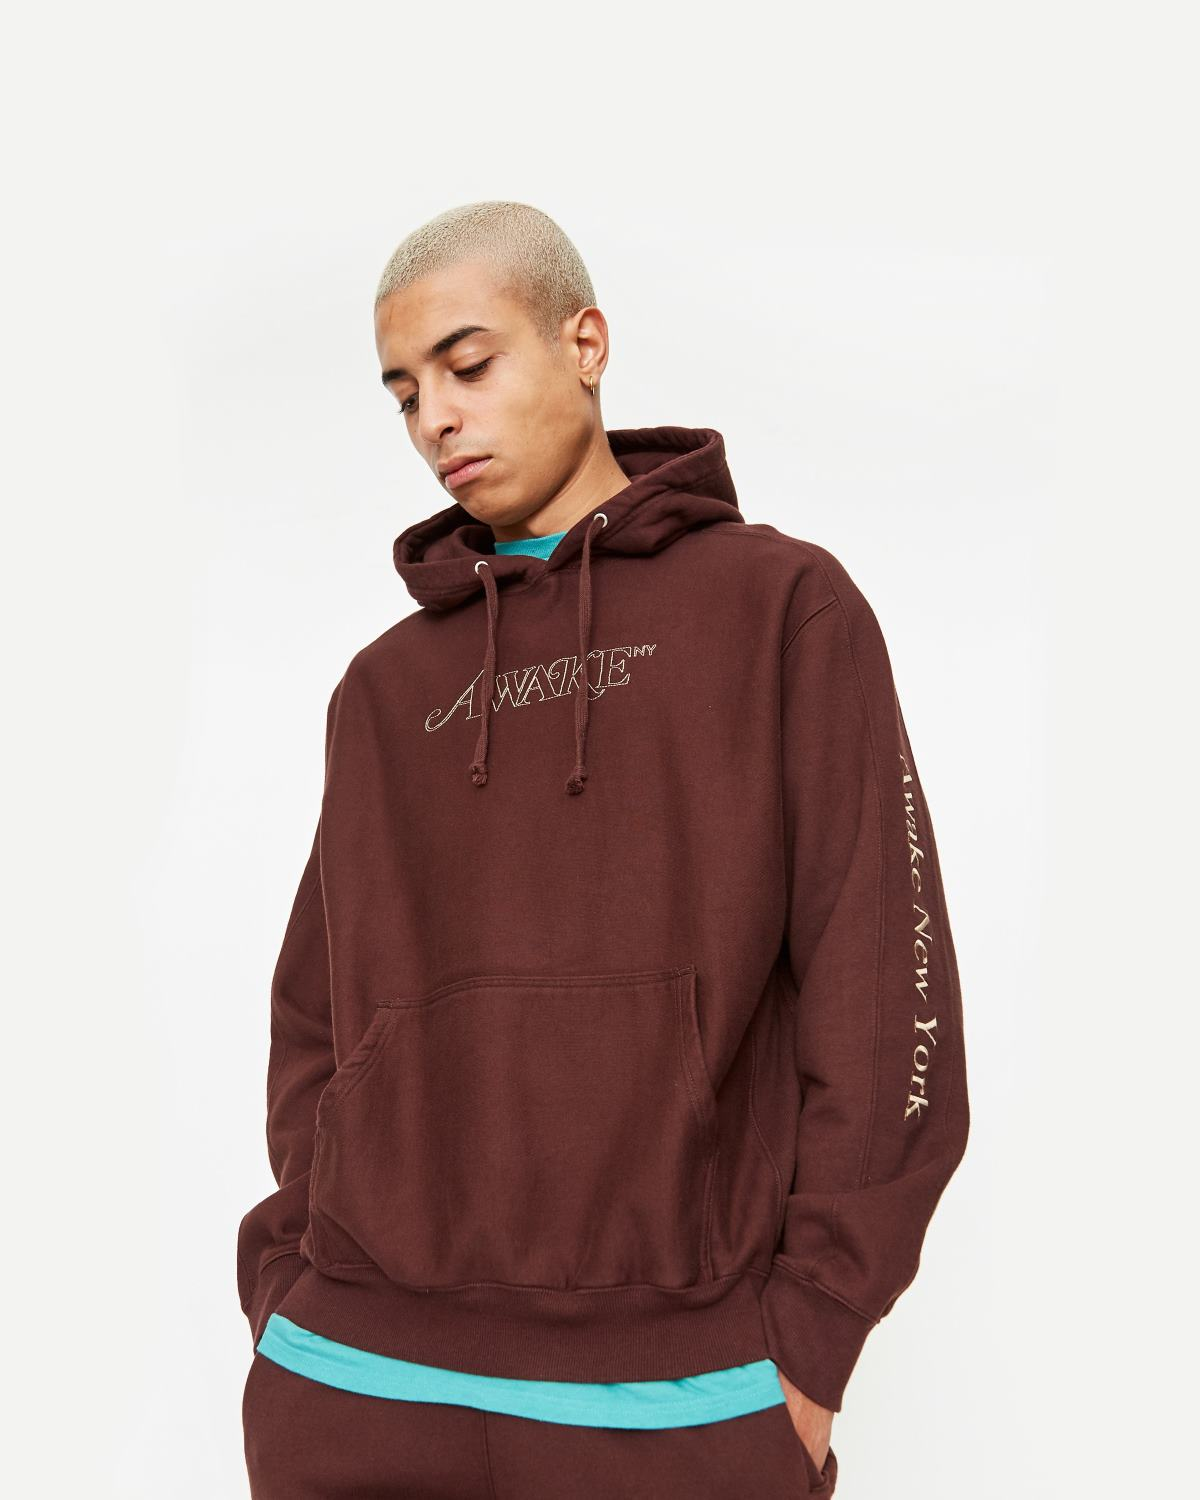 Awake Classic Outline Logo Paneled Embroidered Hoodie Brown 2